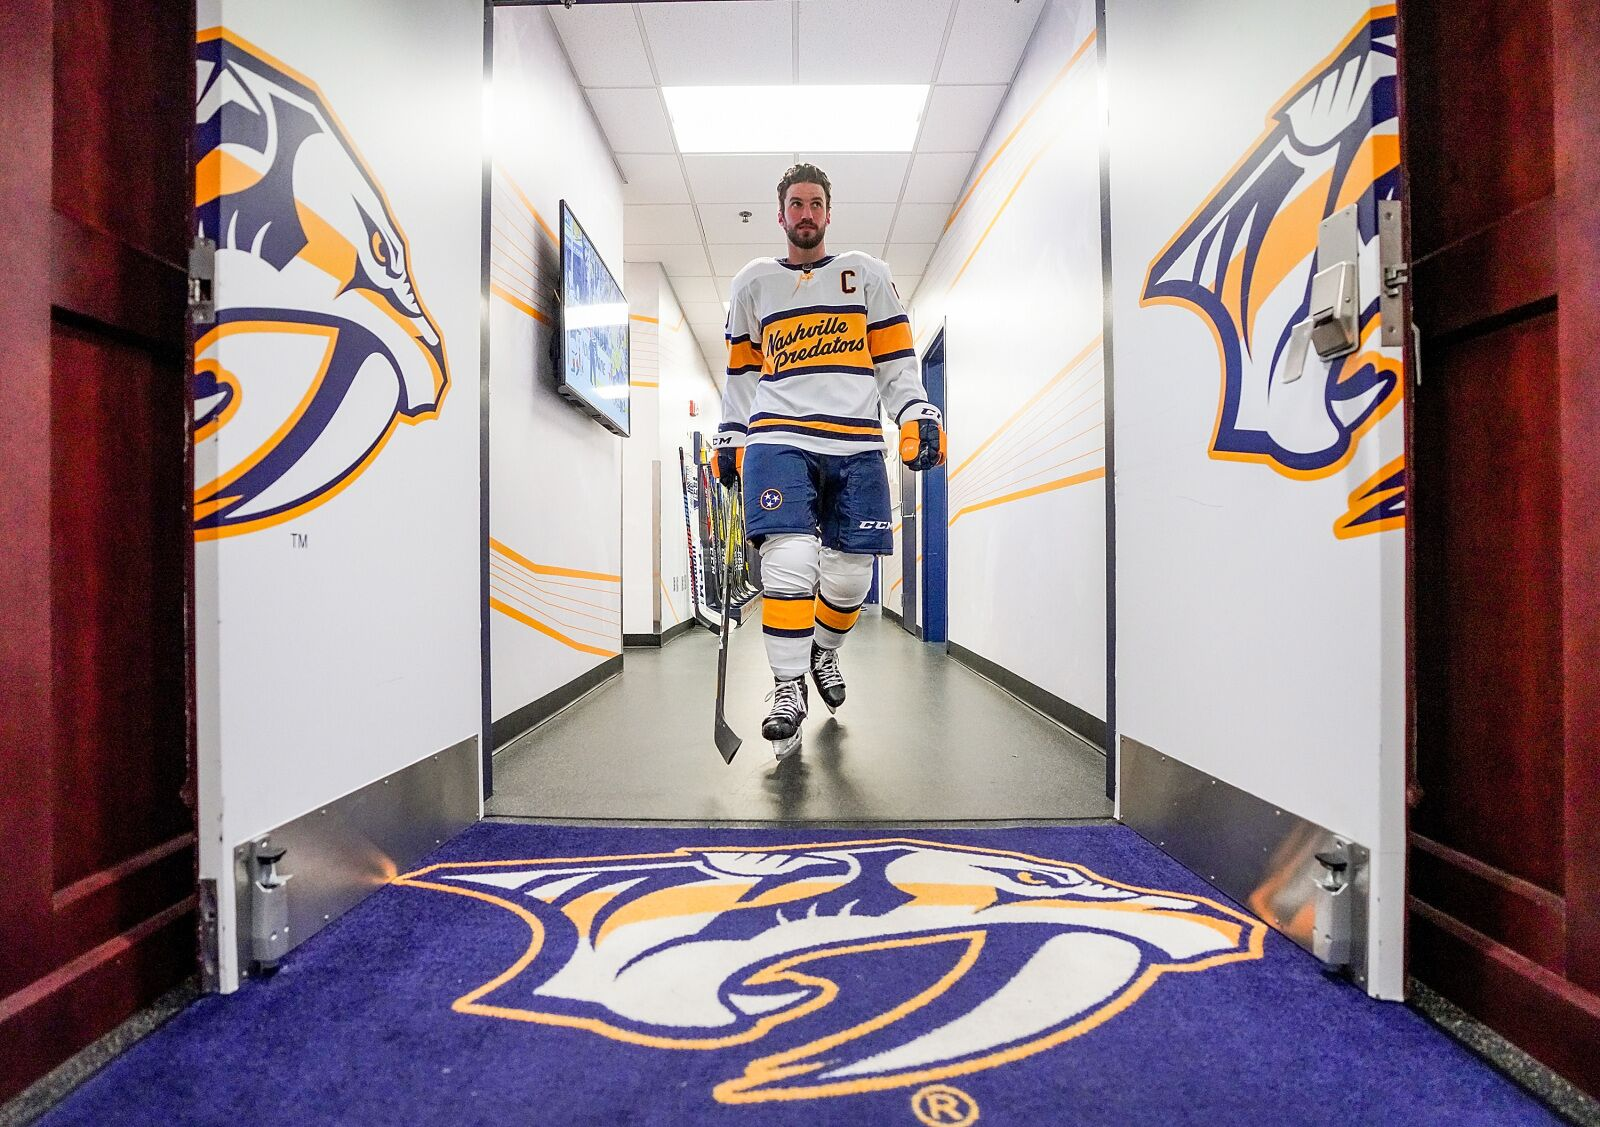 Nashville Predators: What to Expect at the 2020 NHL All-Star Weekend